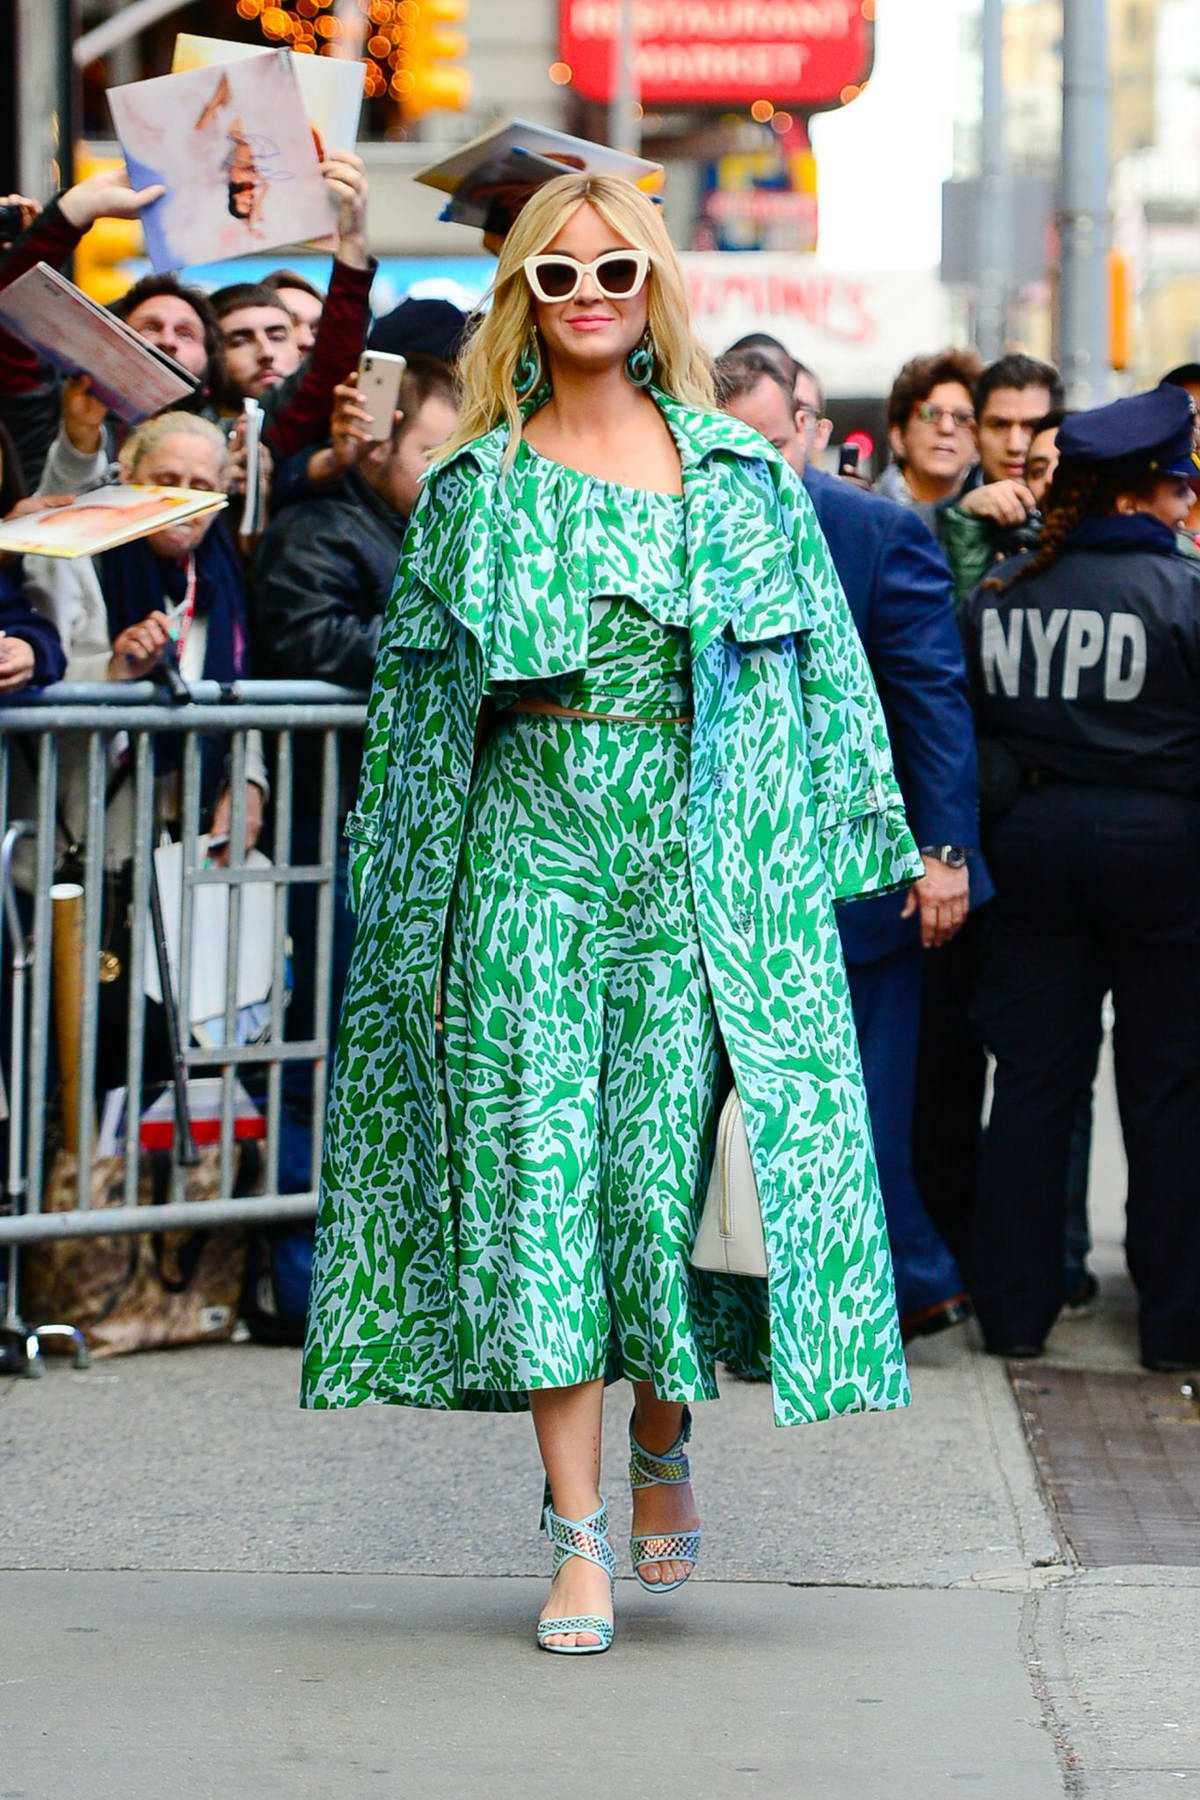 Katy Perry stands out in a green ensemble as she arrives at Good Morning America in New York City